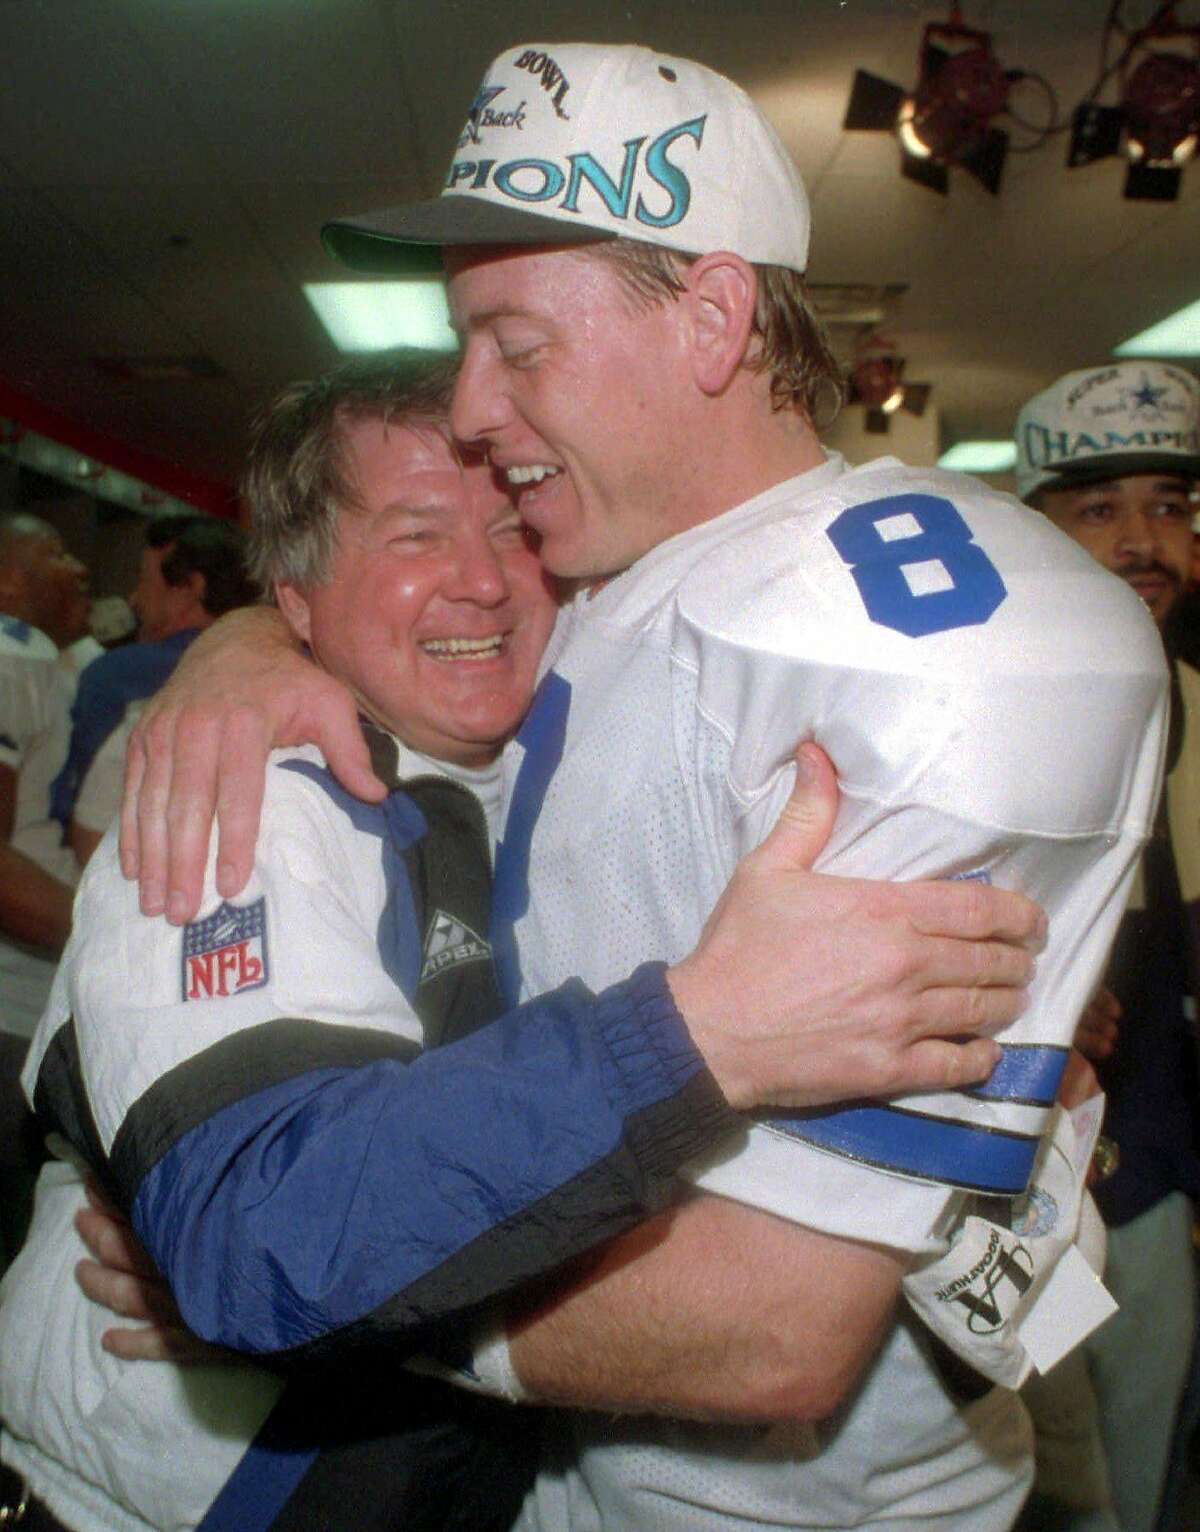 Dallas Cowboys head coach Jimmy Johnson hugs quarterback Troy Aikman in their locker room after beating the Buffalo Bills 30-13 in Super Bowl XXVIII at Atlanta's Georgia Dome, Jan. 30, 1994. No longer convinced that Aikman can remain healthy enough to be their starter, the Dallas Cowboys waived Wednesday, March 7, 2001, the quarterback who led them to three Super Bowl titles.. (AP Photo/Charles Krupa)